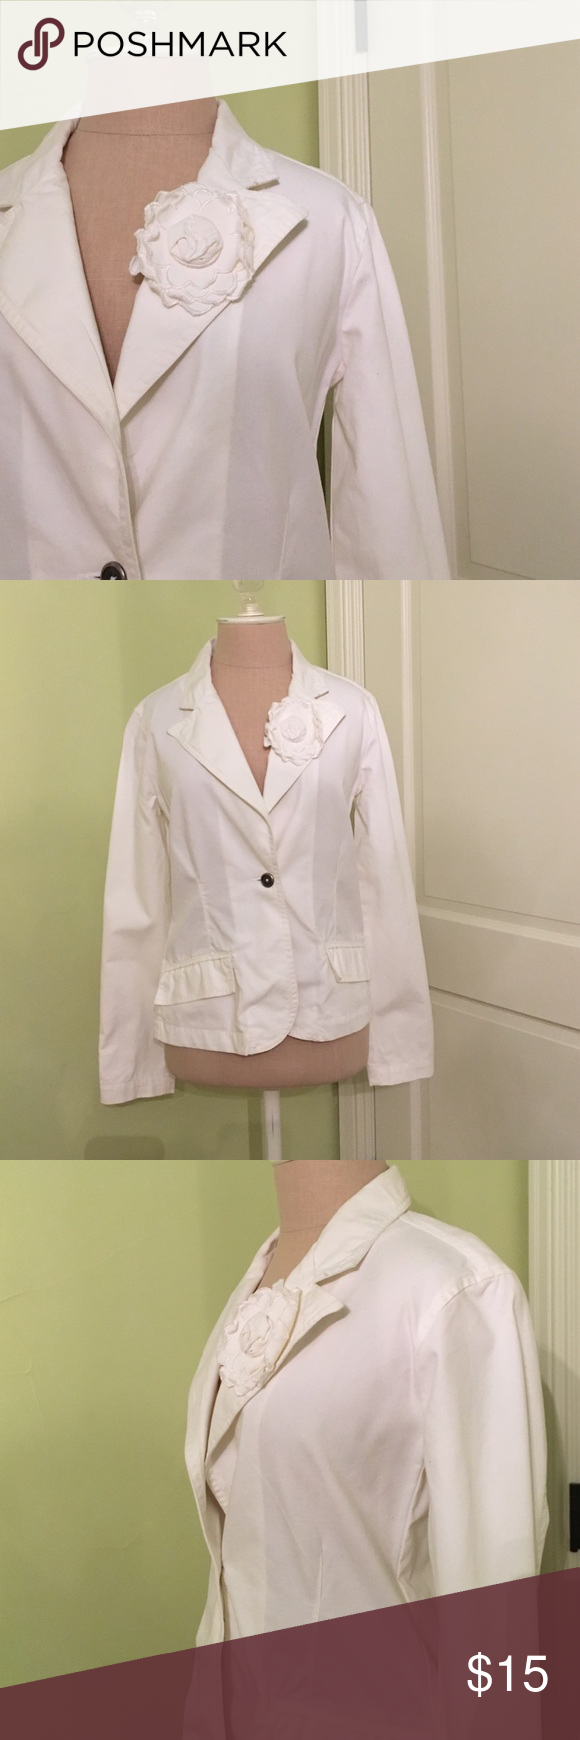 White blazer. White cotton blazer with white flower on the lapel. Silver buttons on the sleeves with slit pockets. Eivissa Jackets & Coats Blazers